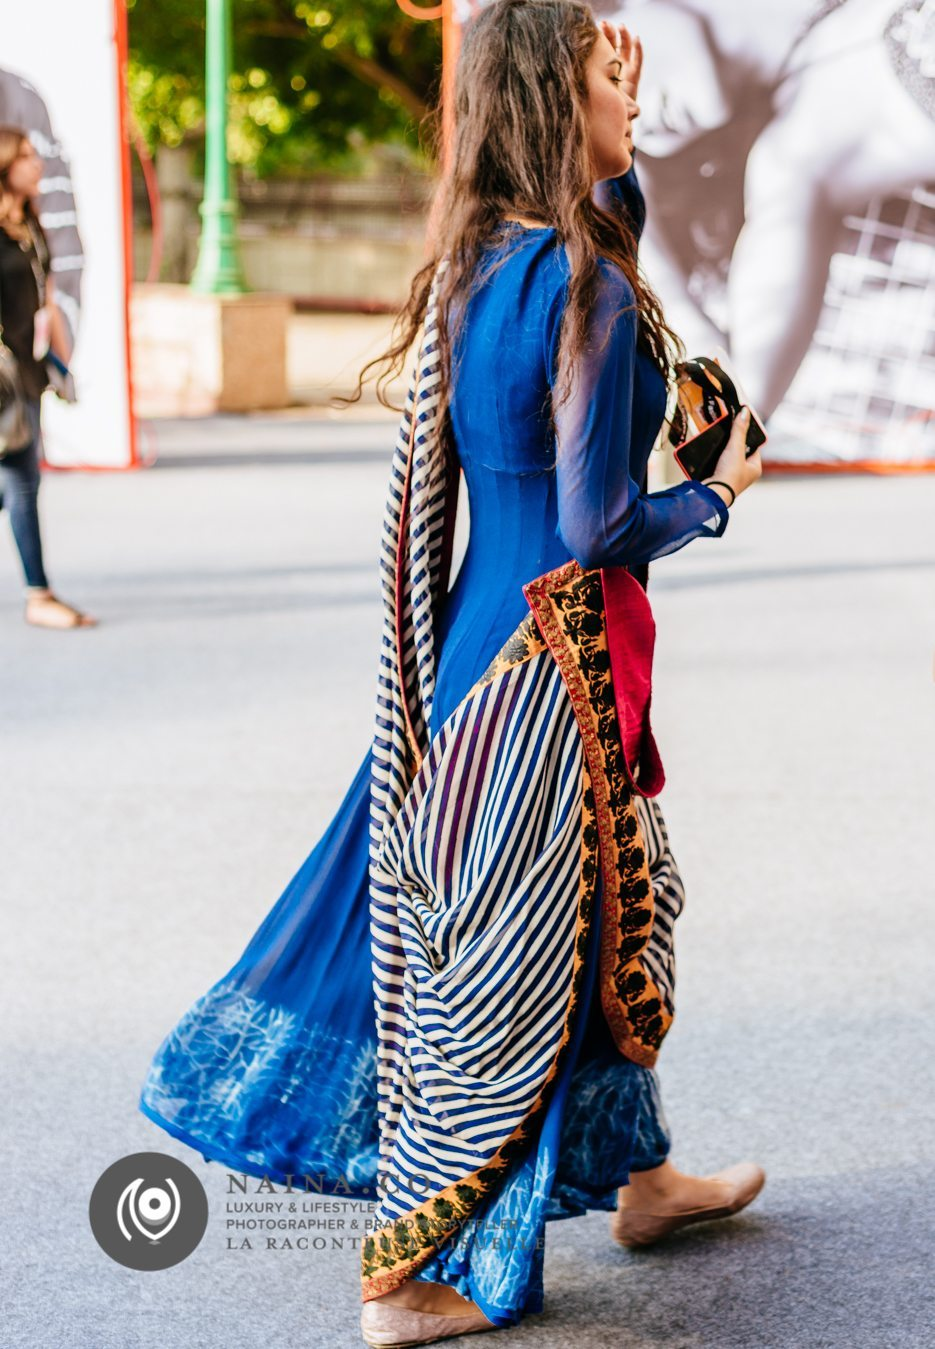 Naina.co-Photographer-Raconteuse-Storyteller-Luxury-Lifestyle-October-2014-Street-Style-WIFWSS15-FDCI-Day01-EyesForFashion-23